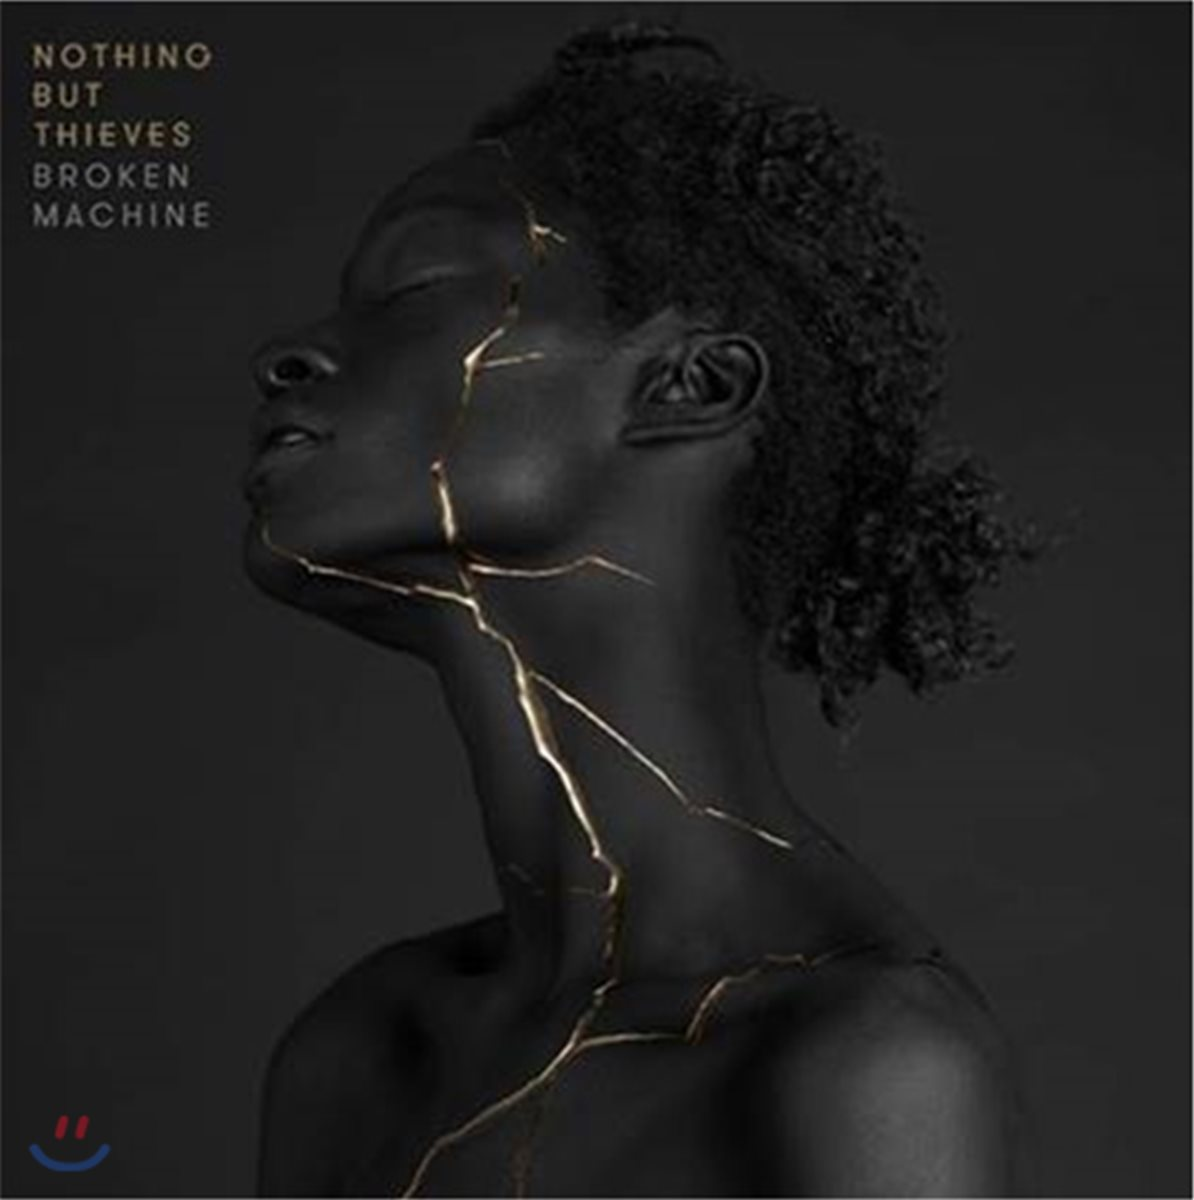 Nothing But Thieves (나씽 벗 띠브스) - Broken Machine (Korea Special Limited Edition)